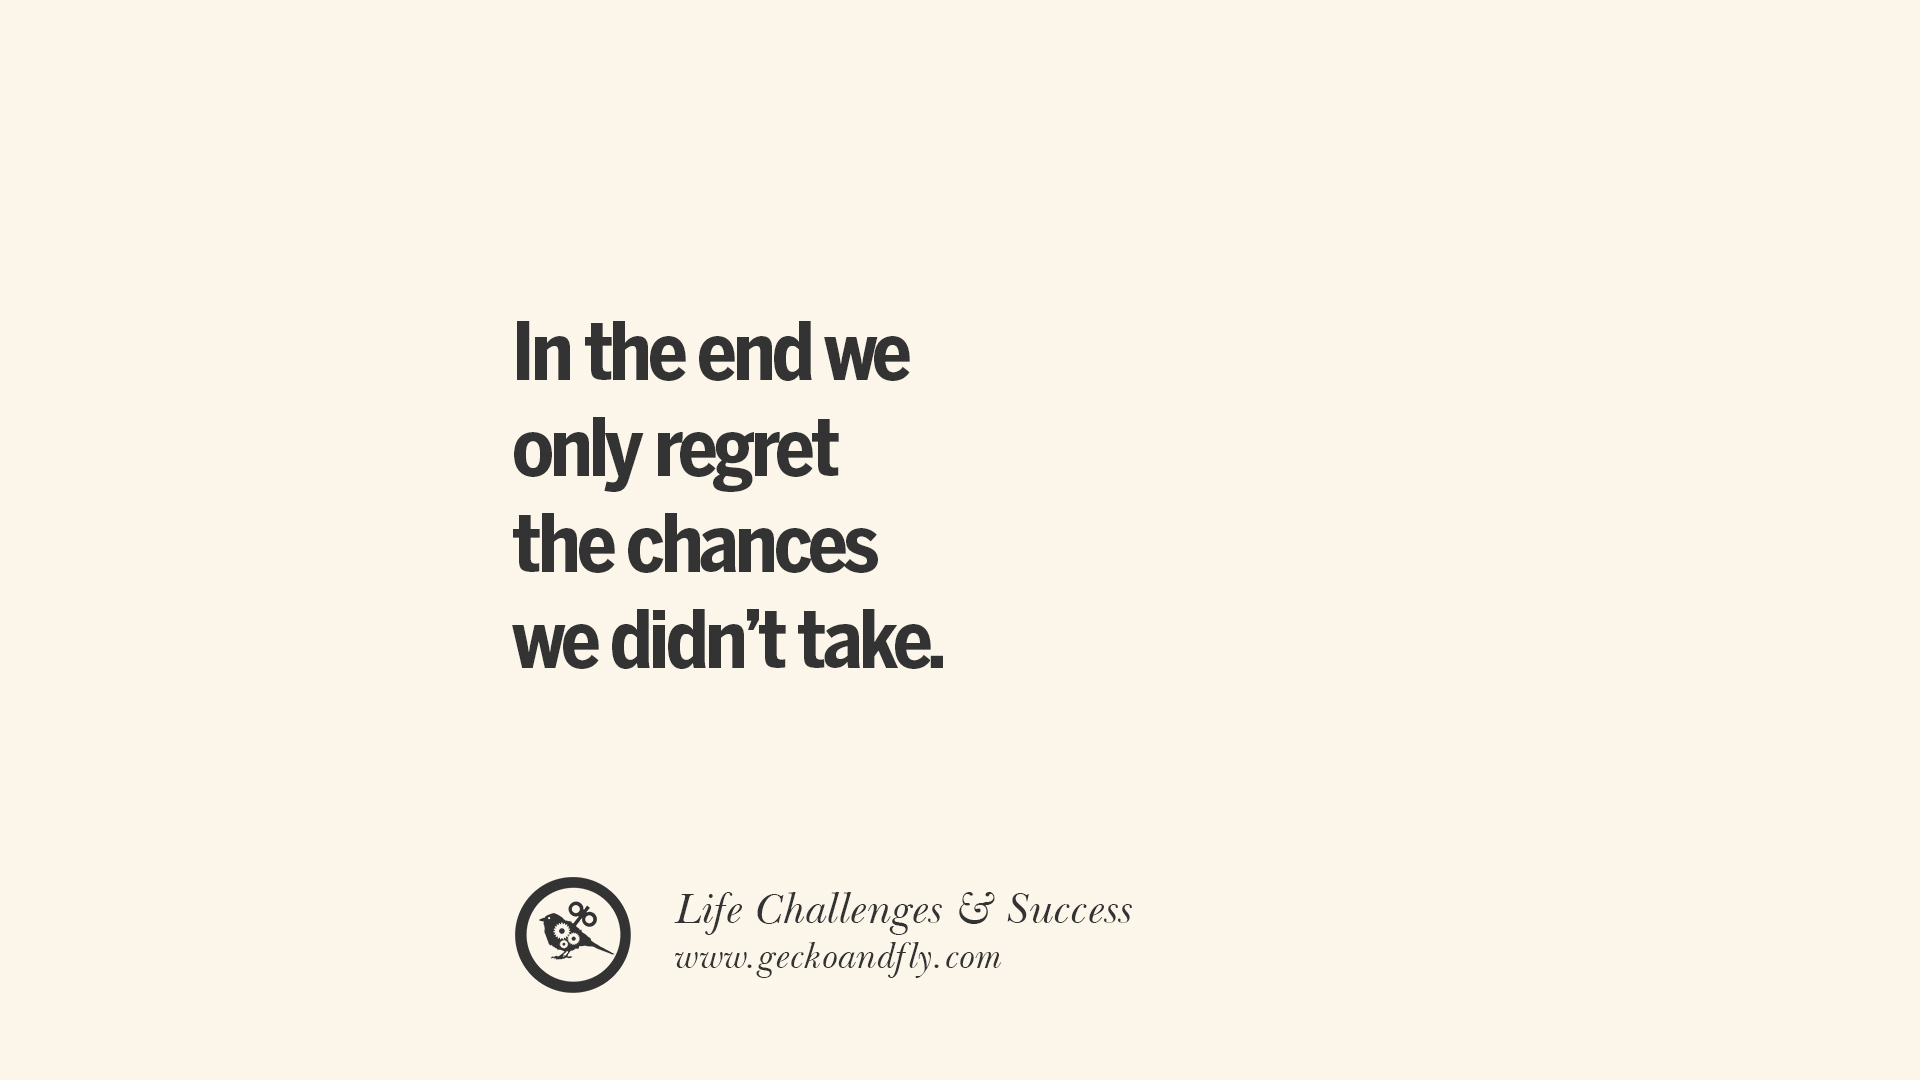 End Quotes 36 Inspirational Quotes About Life Challenges And The Pursuit Of